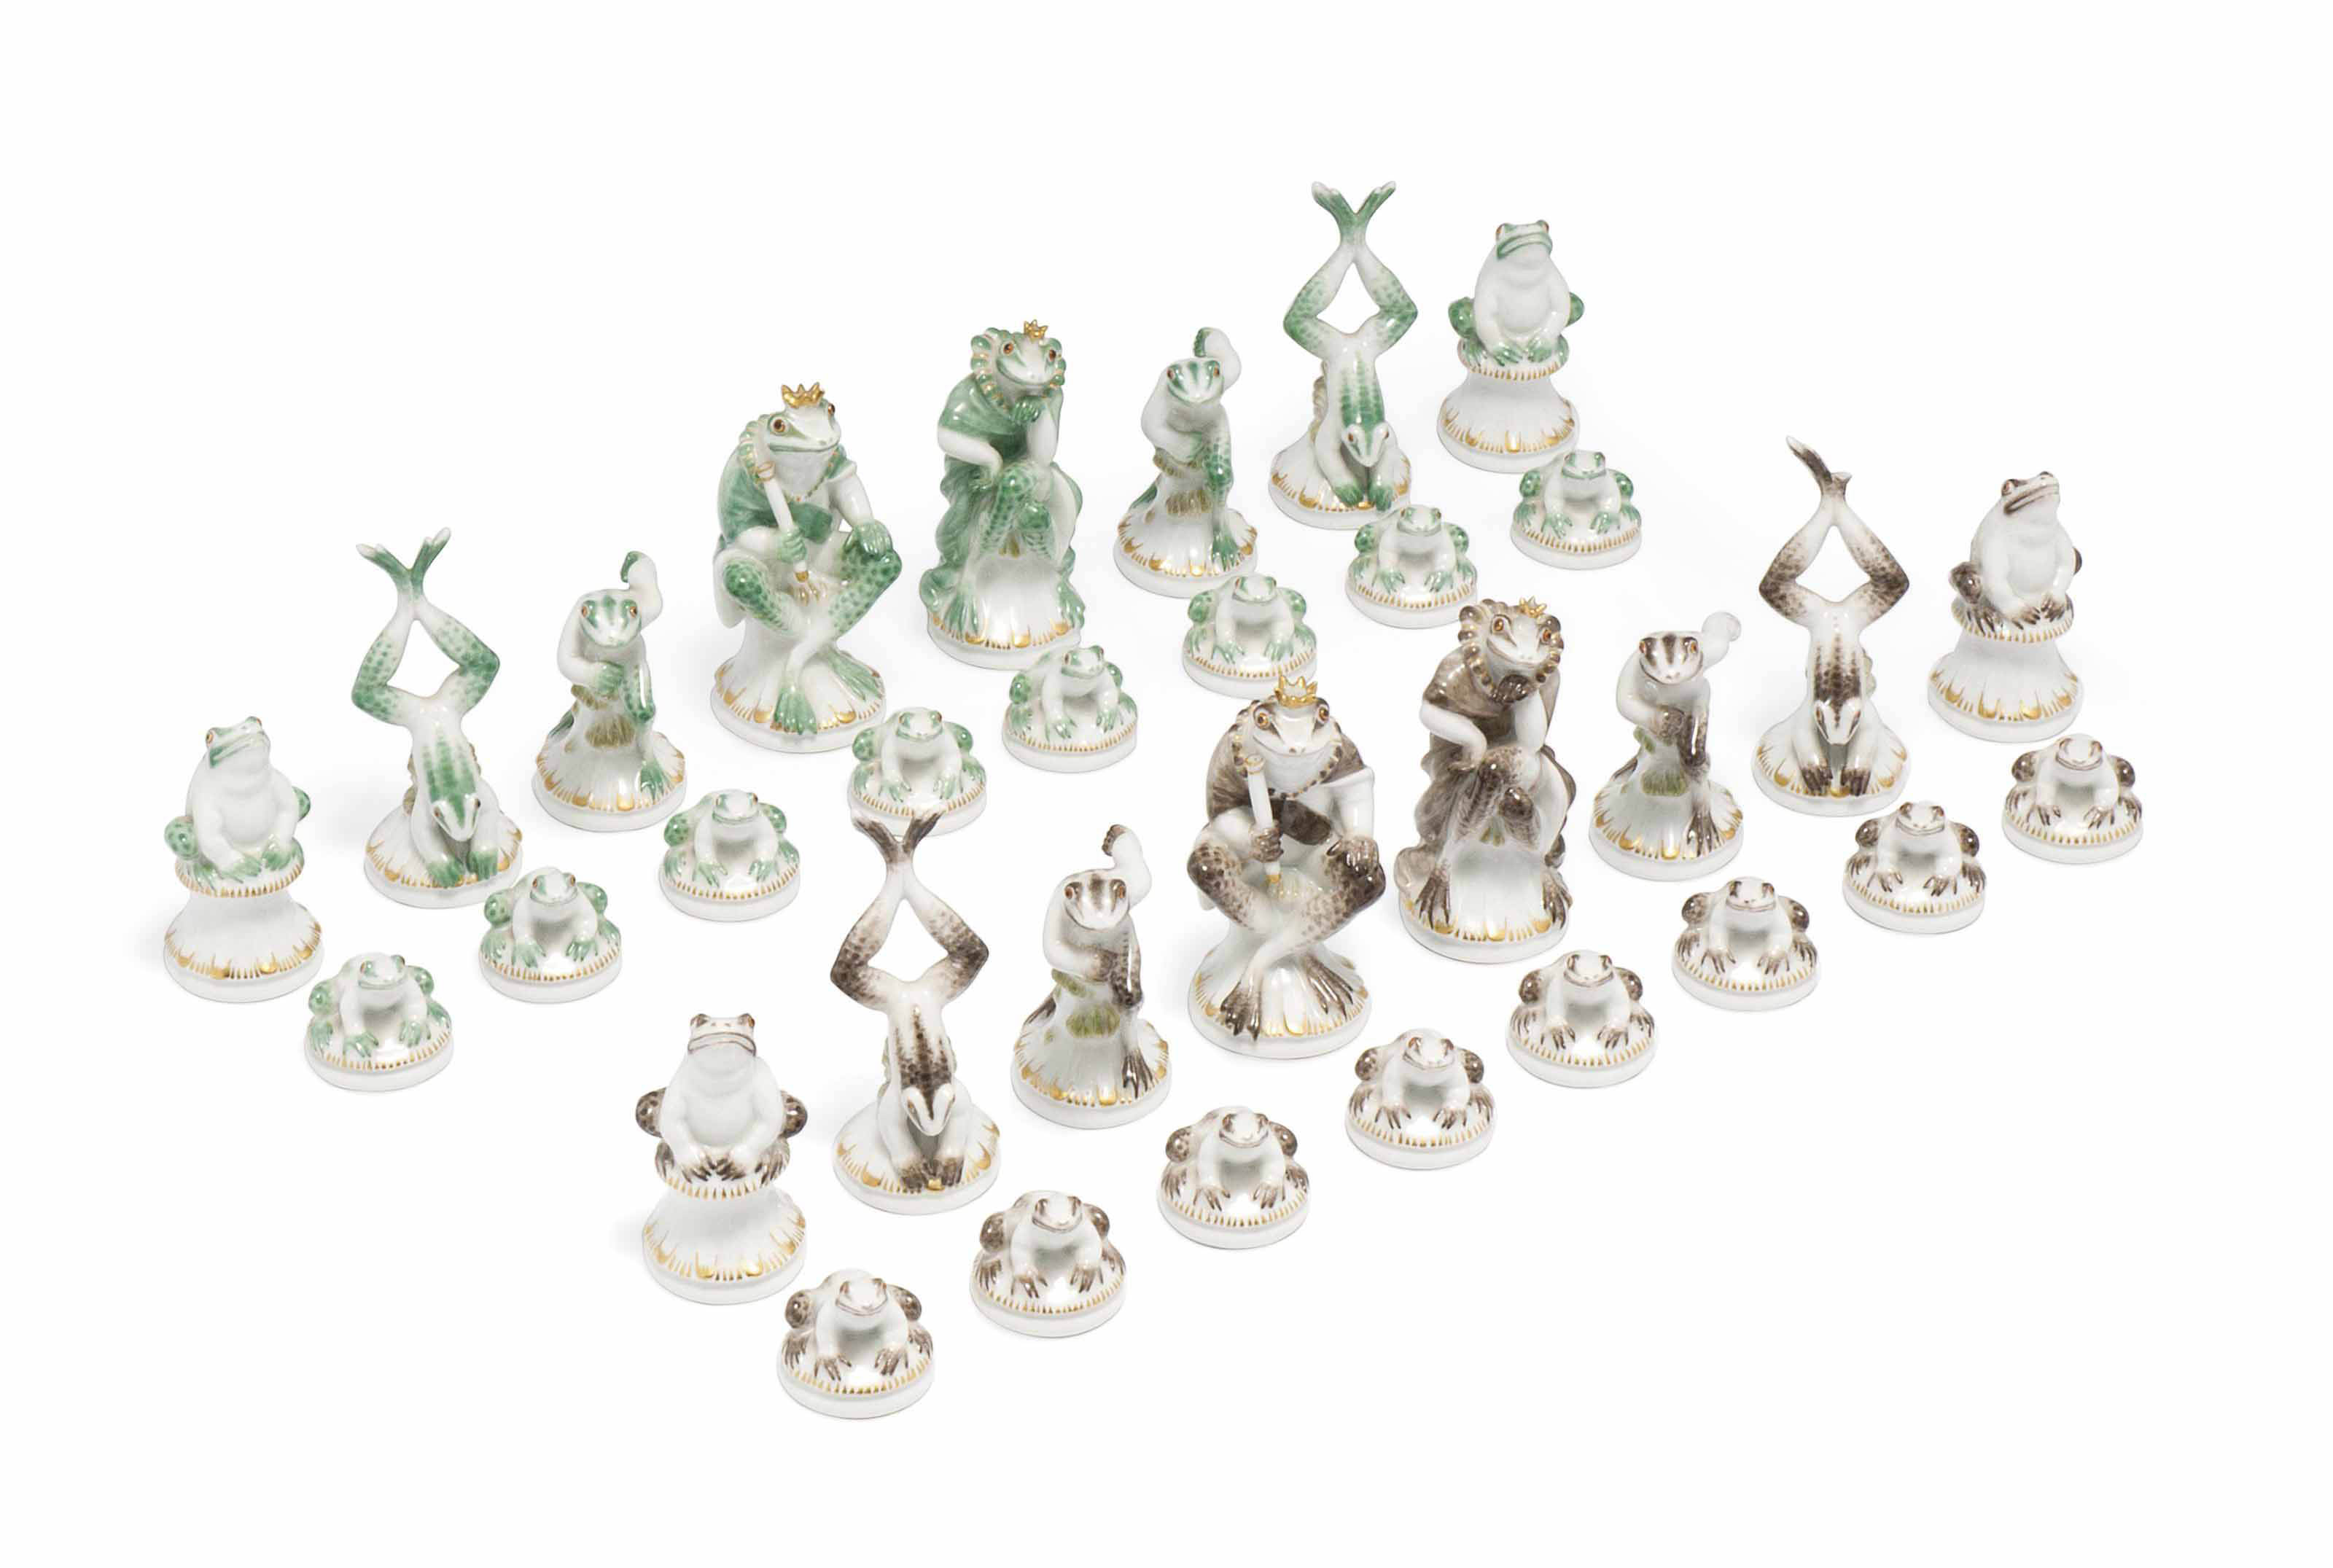 A MEISSEN 'FROG' CHESS SET | DATE CODES FOR 1976, BLUE